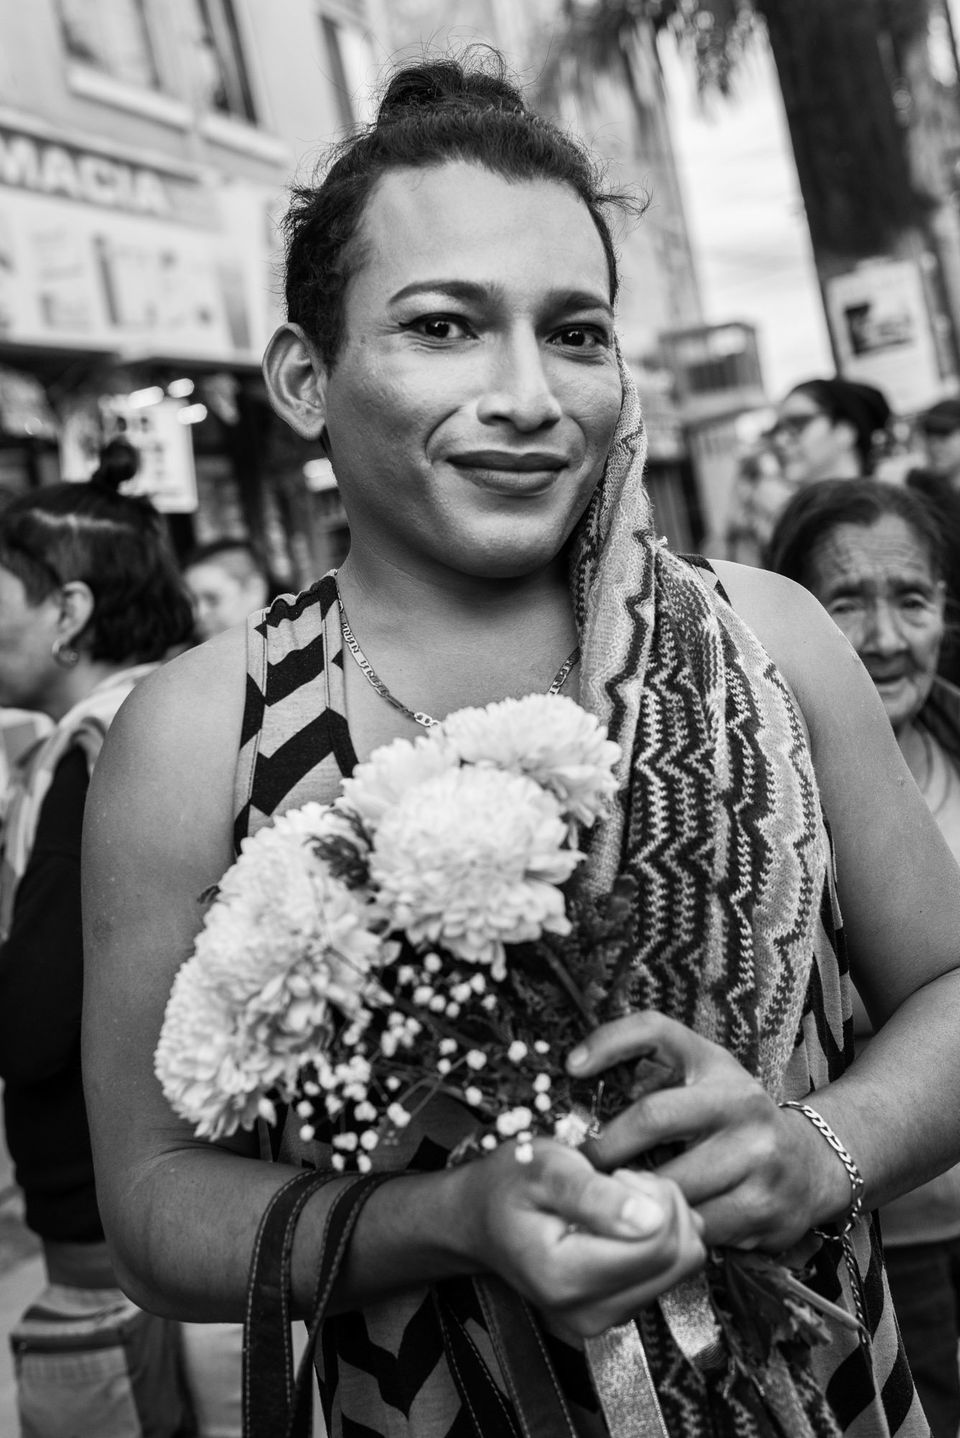 Mar is a member of the migrant caravan from Honduras and participated in an LGBTQ wedding in Tijuana, Mexico. Same-sex marria